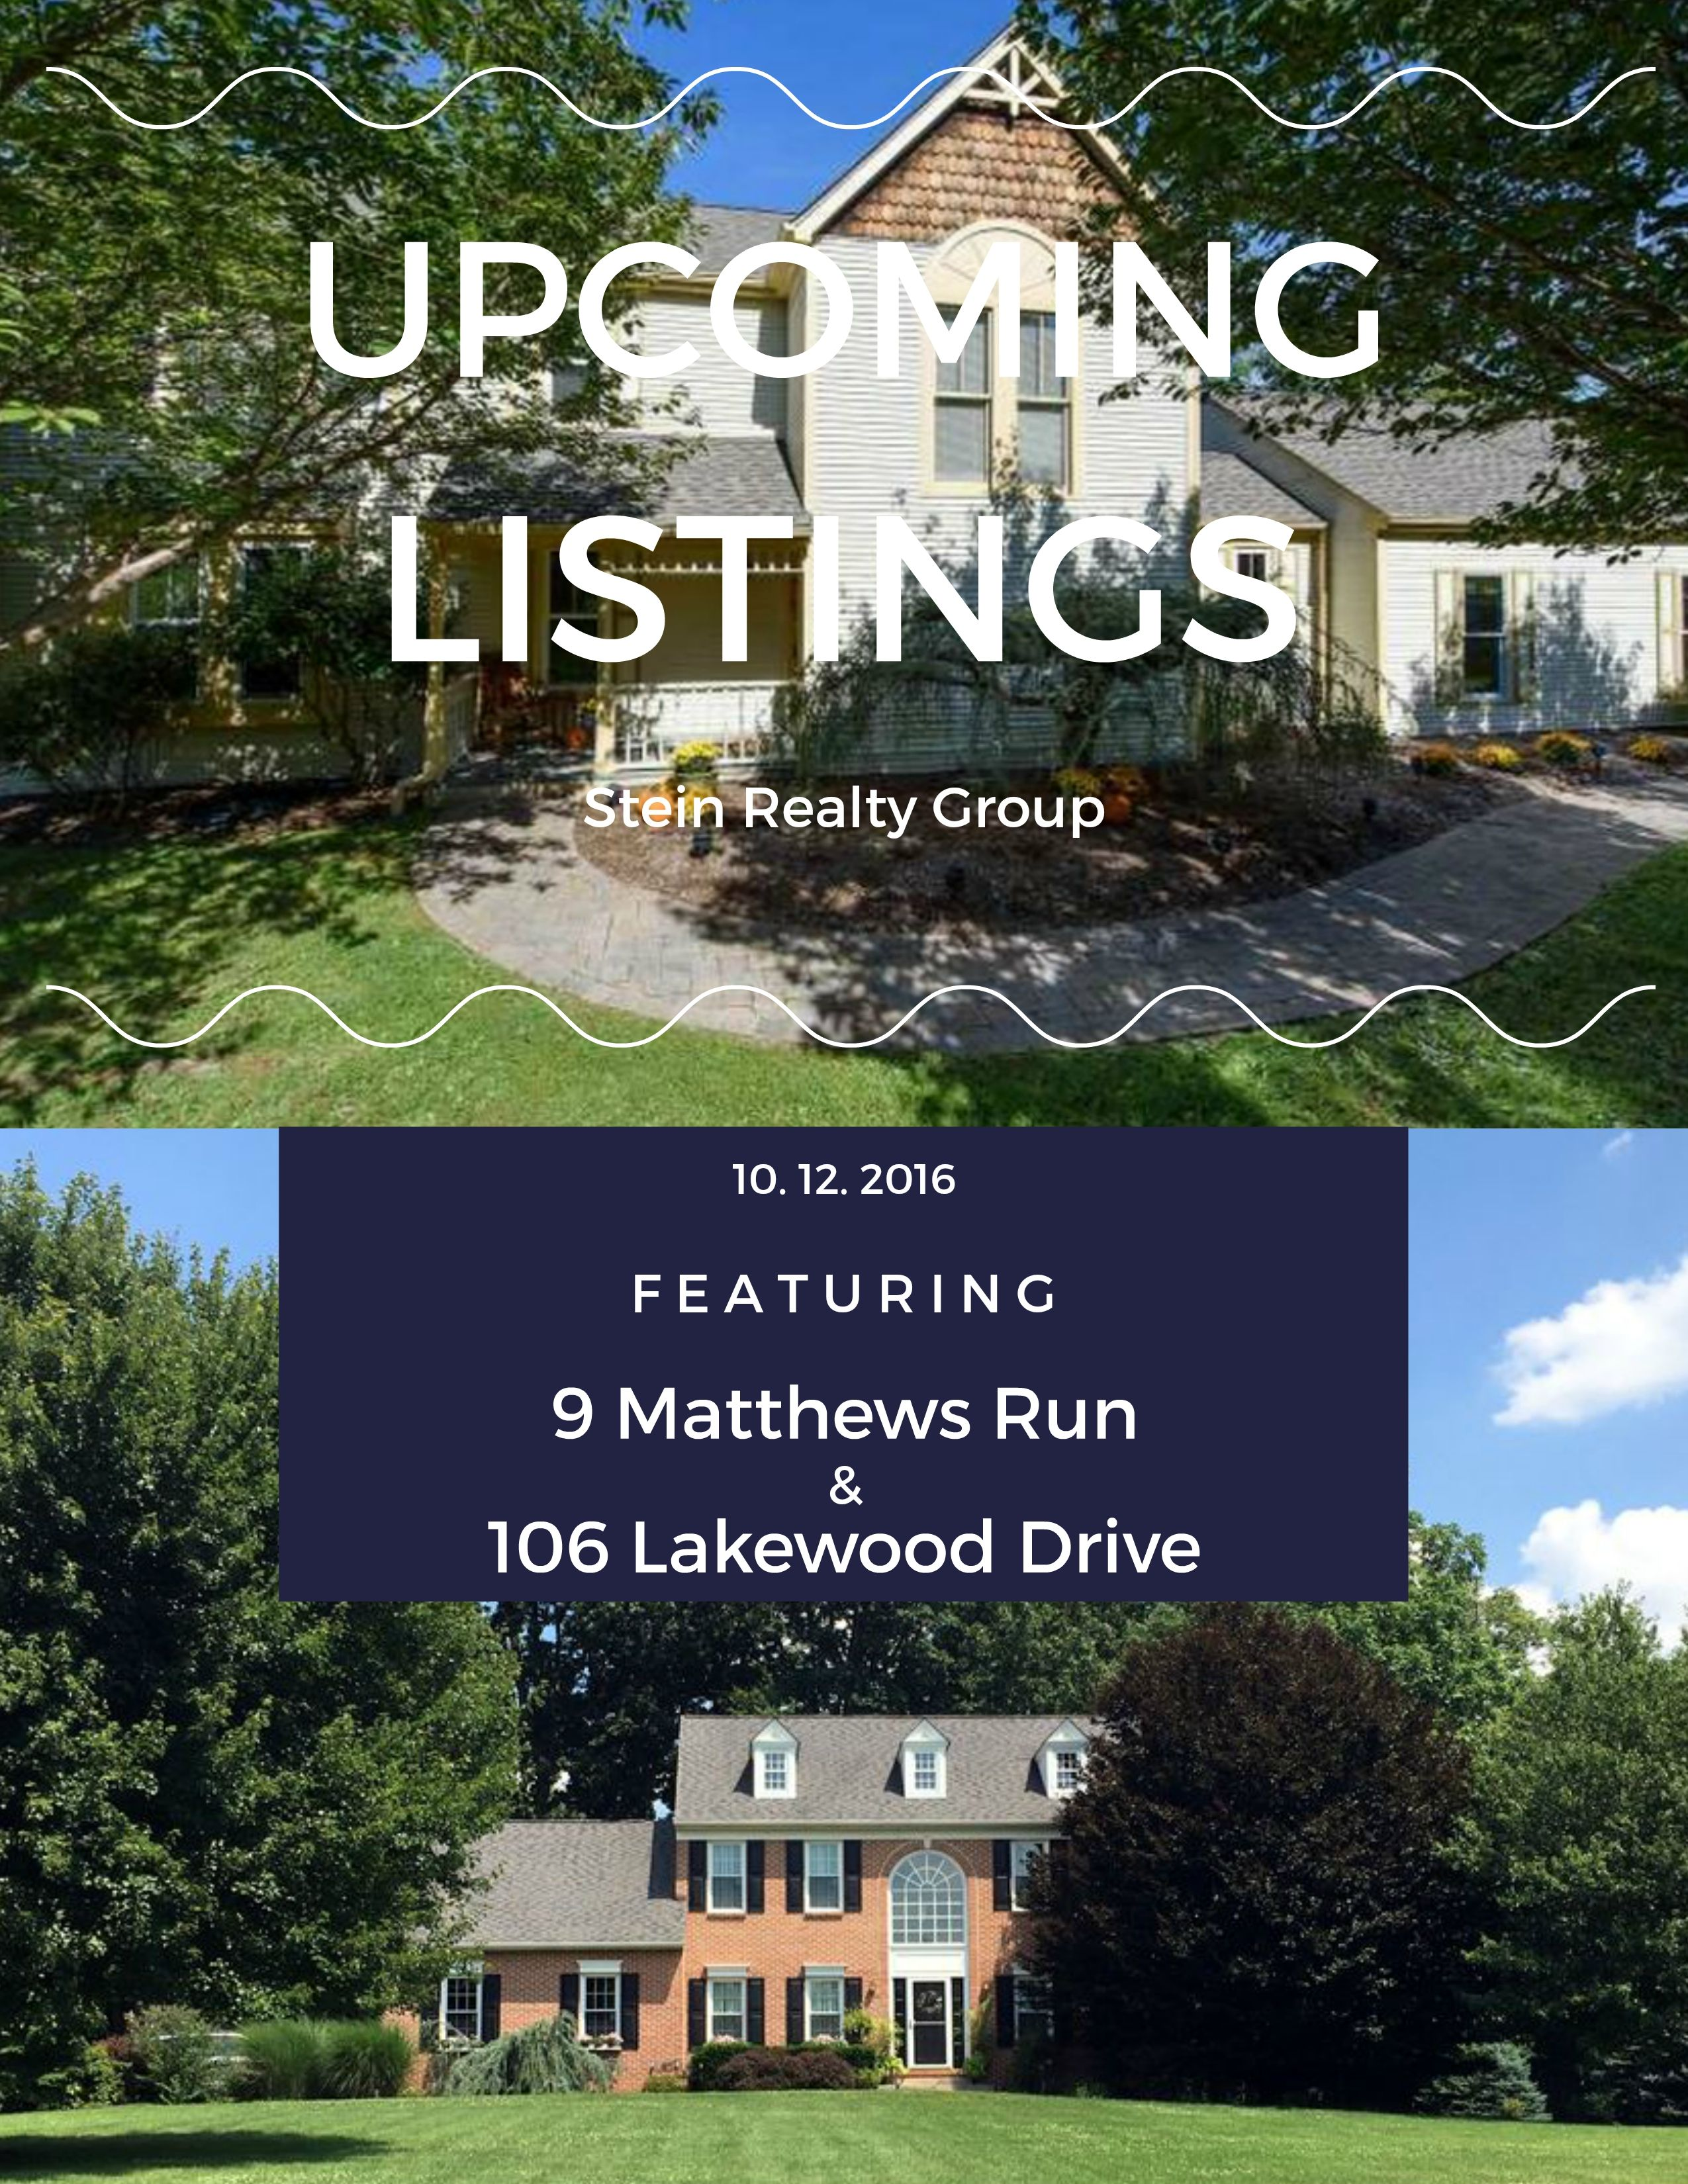 Pin de Stein Realty Group en Upcoming Homes for Sale Pinterest